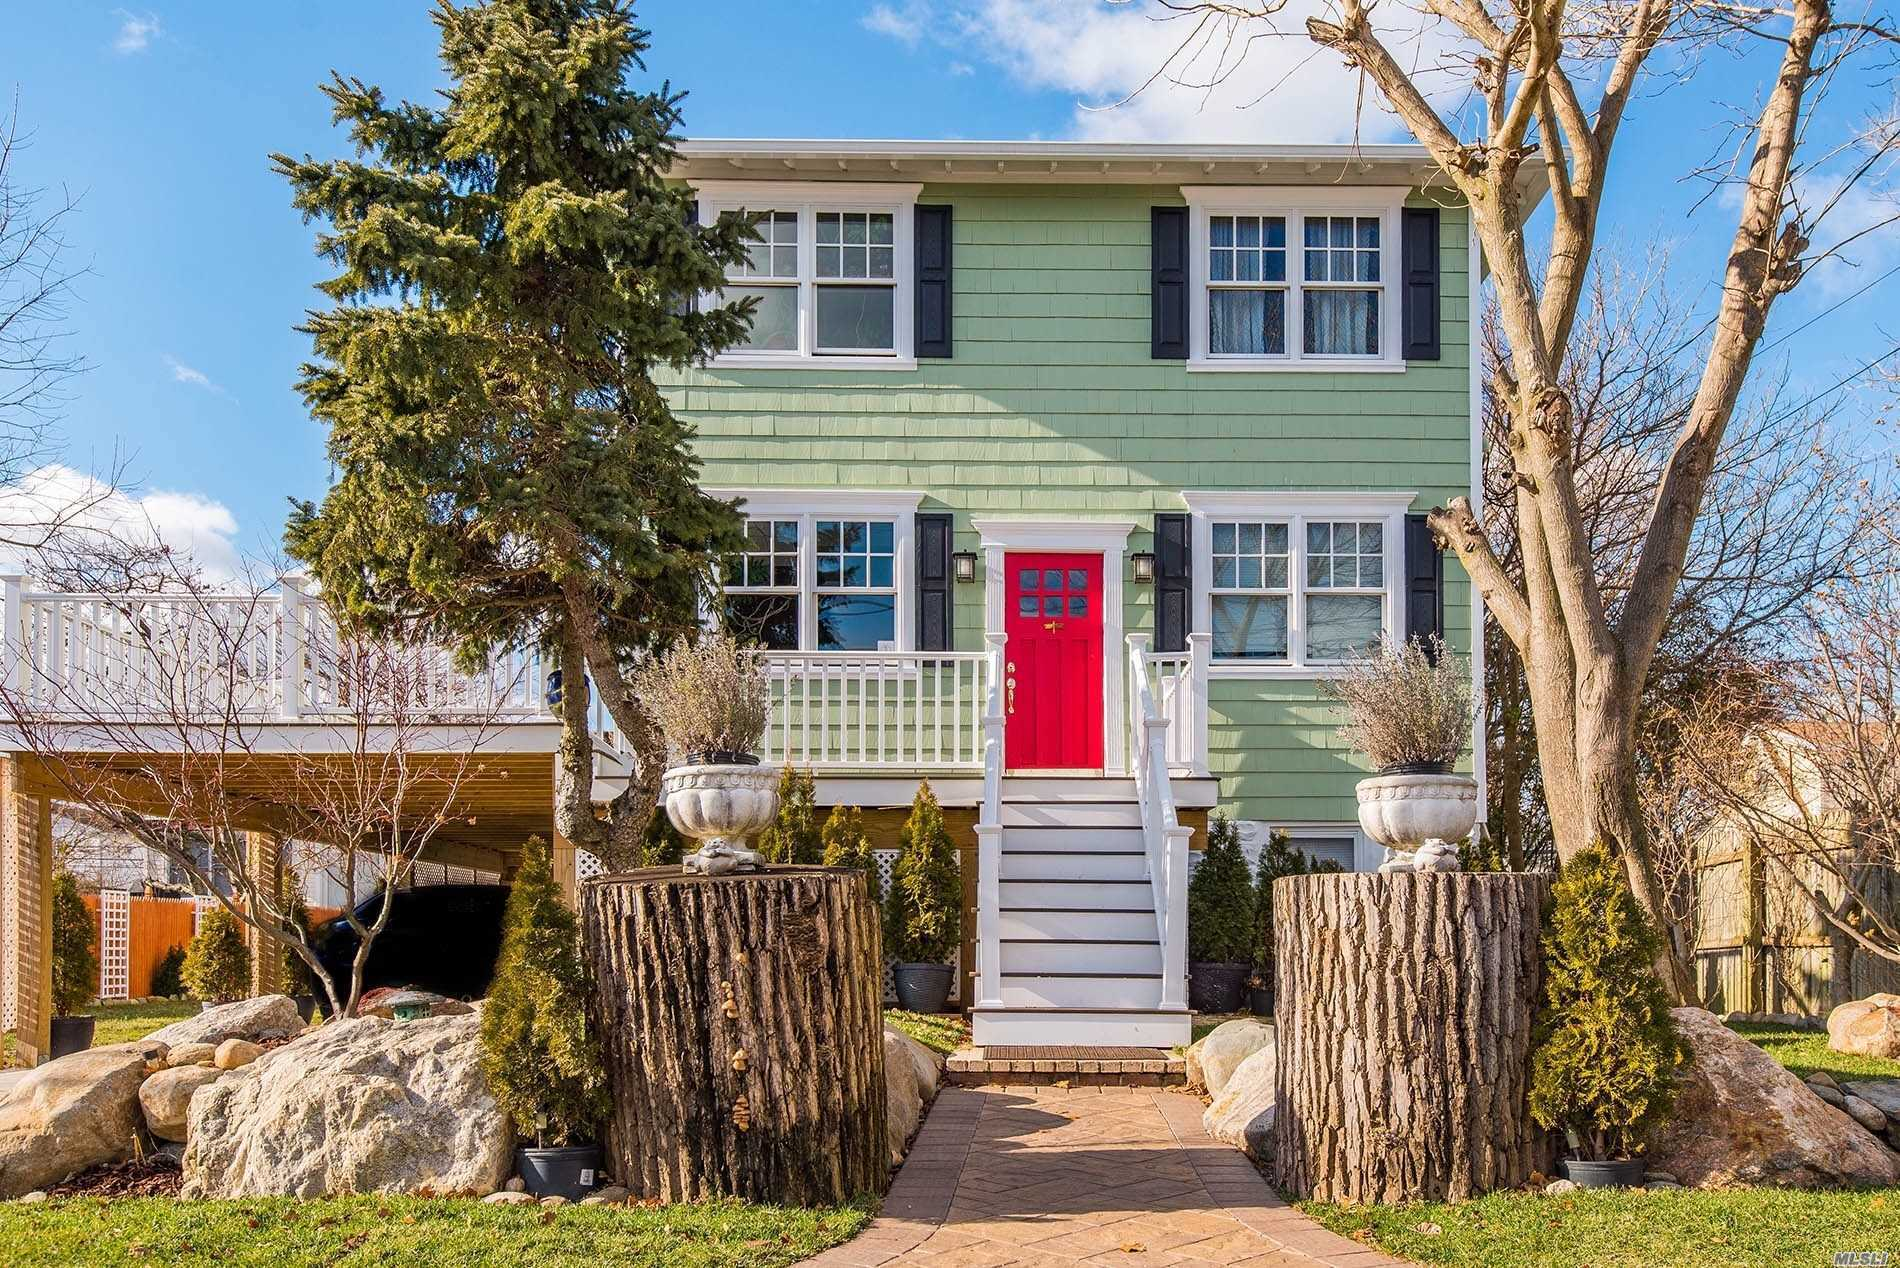 Newly Updated Colonial Features Hardwood Throughout, A Master Bedrm W On Suite & Balcony,  2 Queen Bedrms & Office. Gas Fireplace,  Cac, & Expansive, Open1st Fl,  Kitchen W Dual Sinks Lead To The Enormous 3 Tiered Decks W Ocean Views. Quaint Harmonious Yard Is An Invitation To Join Nature & The Outdoors. Surrounded By A Fish Pond, Private Beach Club, Fishing, Bathing, Boating & Sound Beach Rights, 13 X 40 Carport